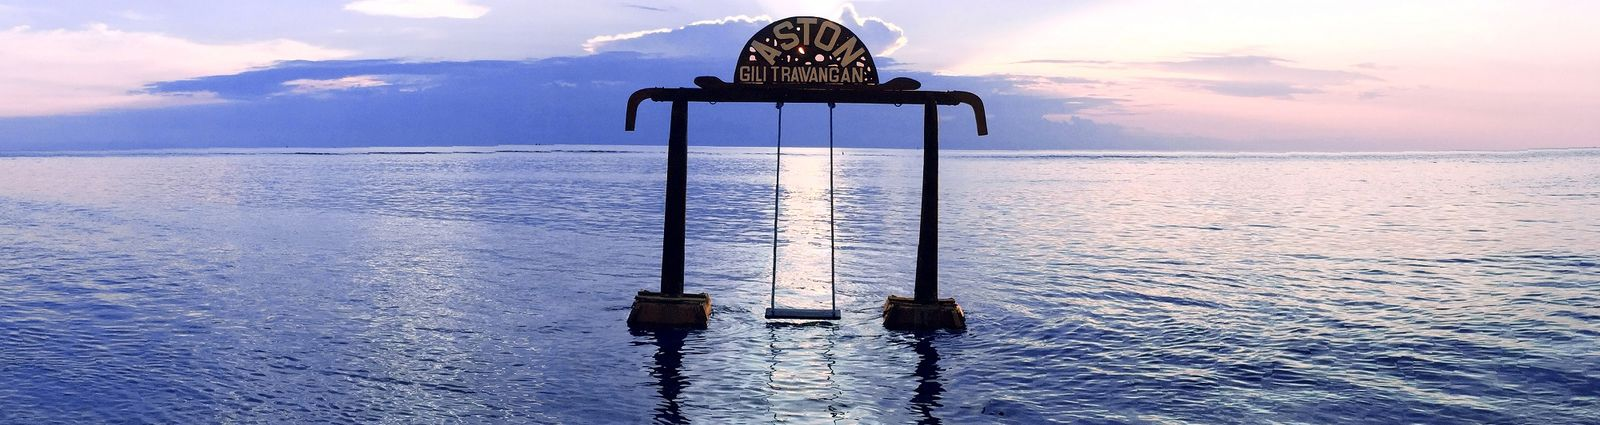 Aston Sunset Beach Resort - Gili Trawangan